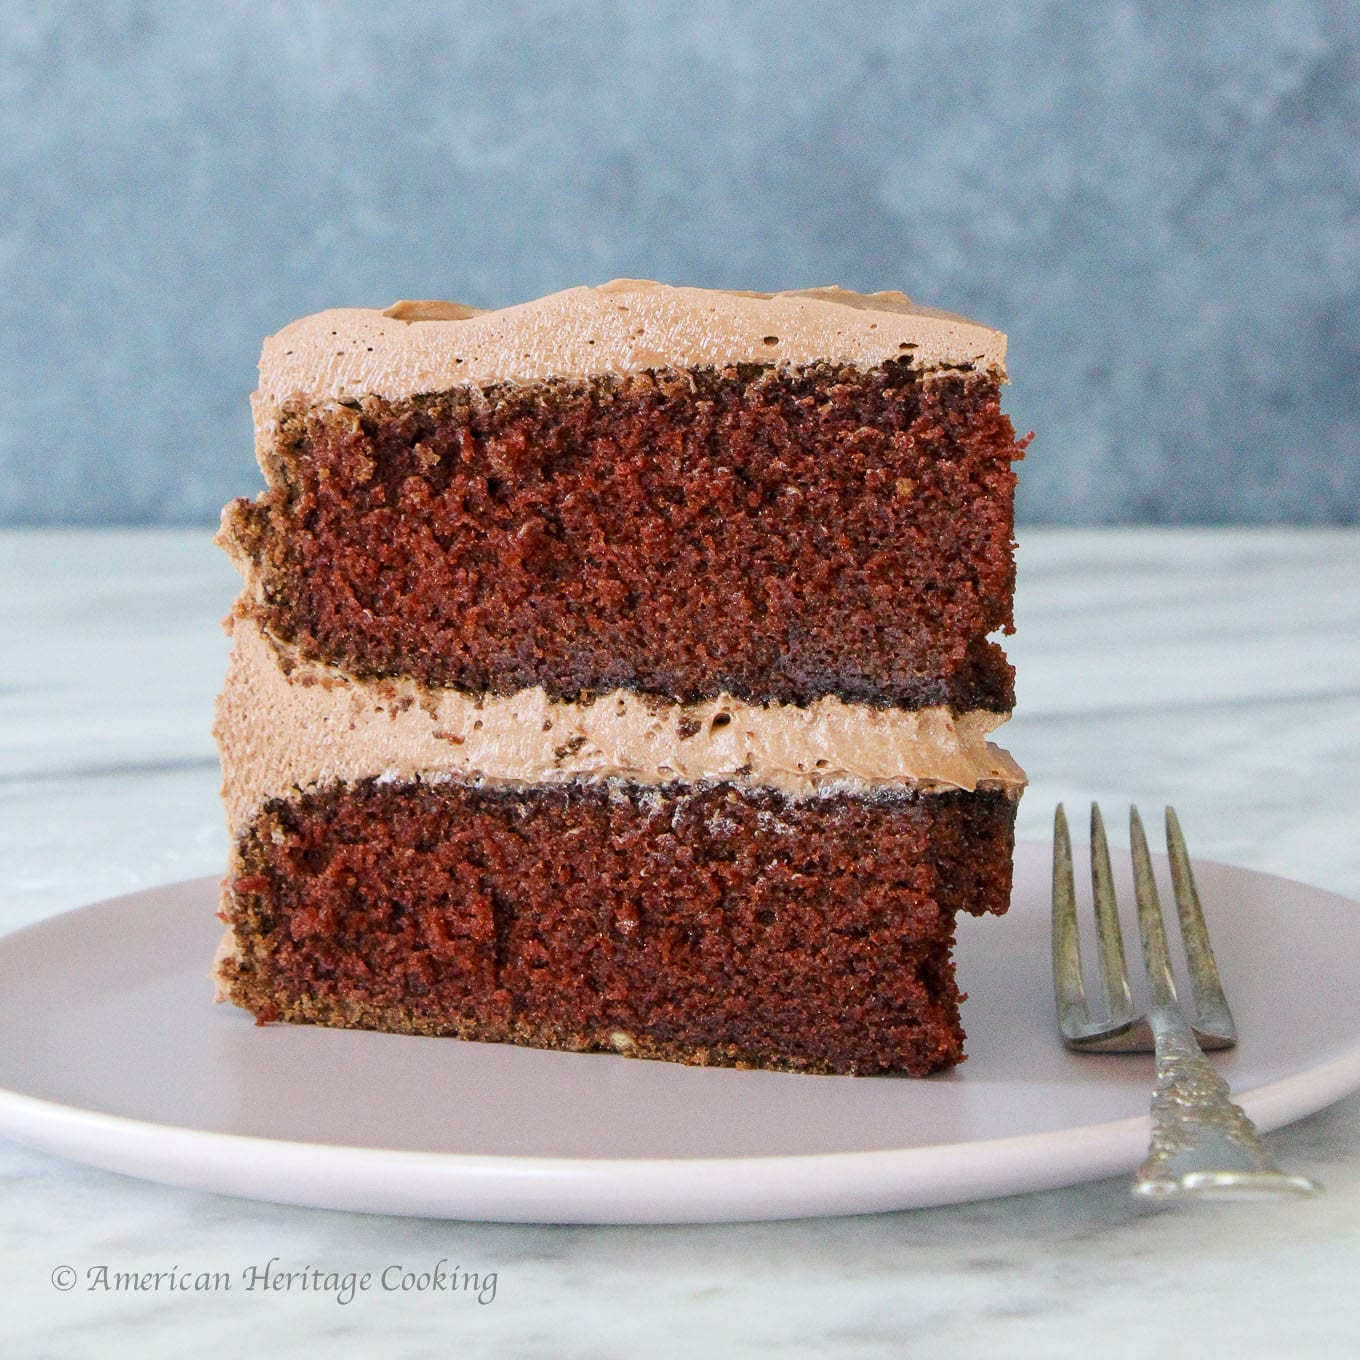 This Chocolate Mayonnaise Cake is tender, moist and perfectly rich. Slather it with a silky chocolate cream cheese buttercream for the perfect pair!